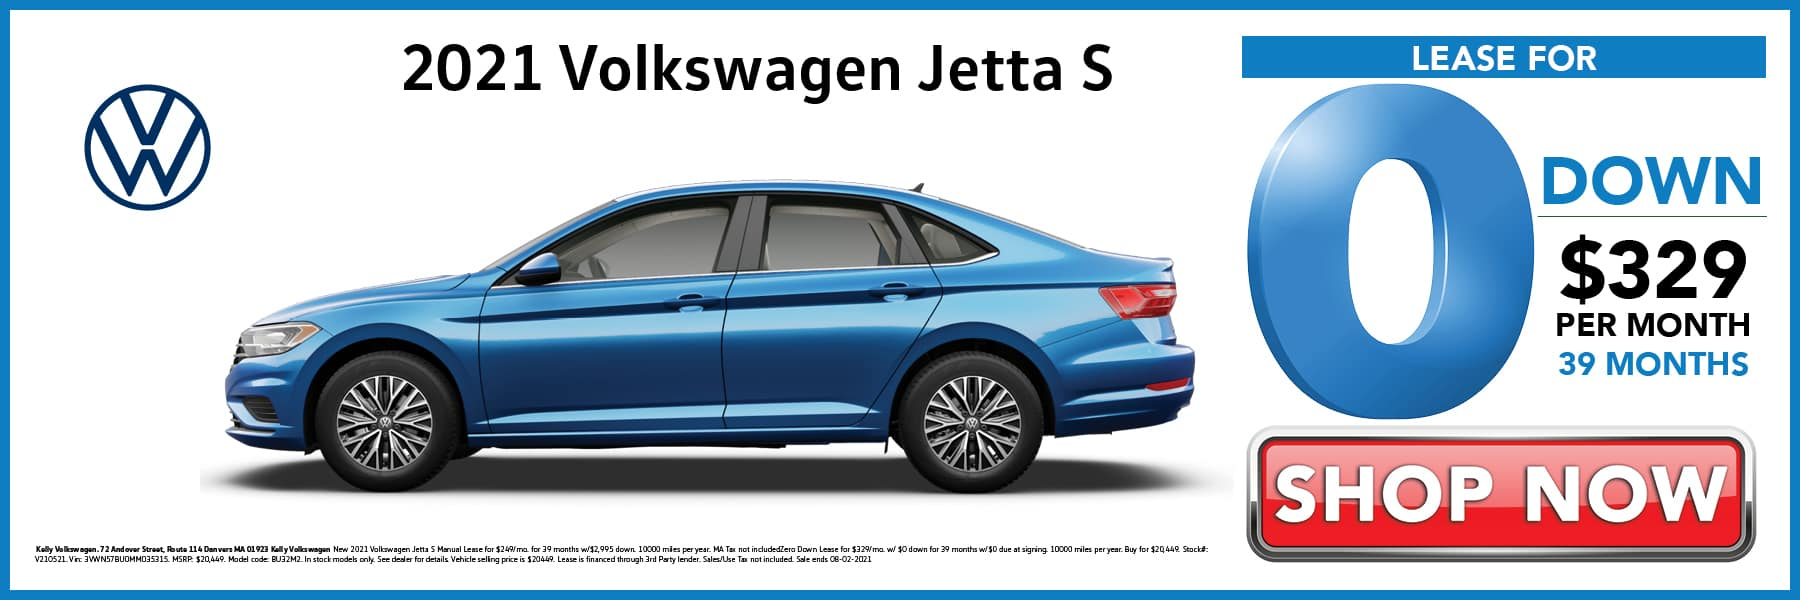 2021 Volkswagen Jetta S Lease for 0 Down then $329 per Month for 39 Months